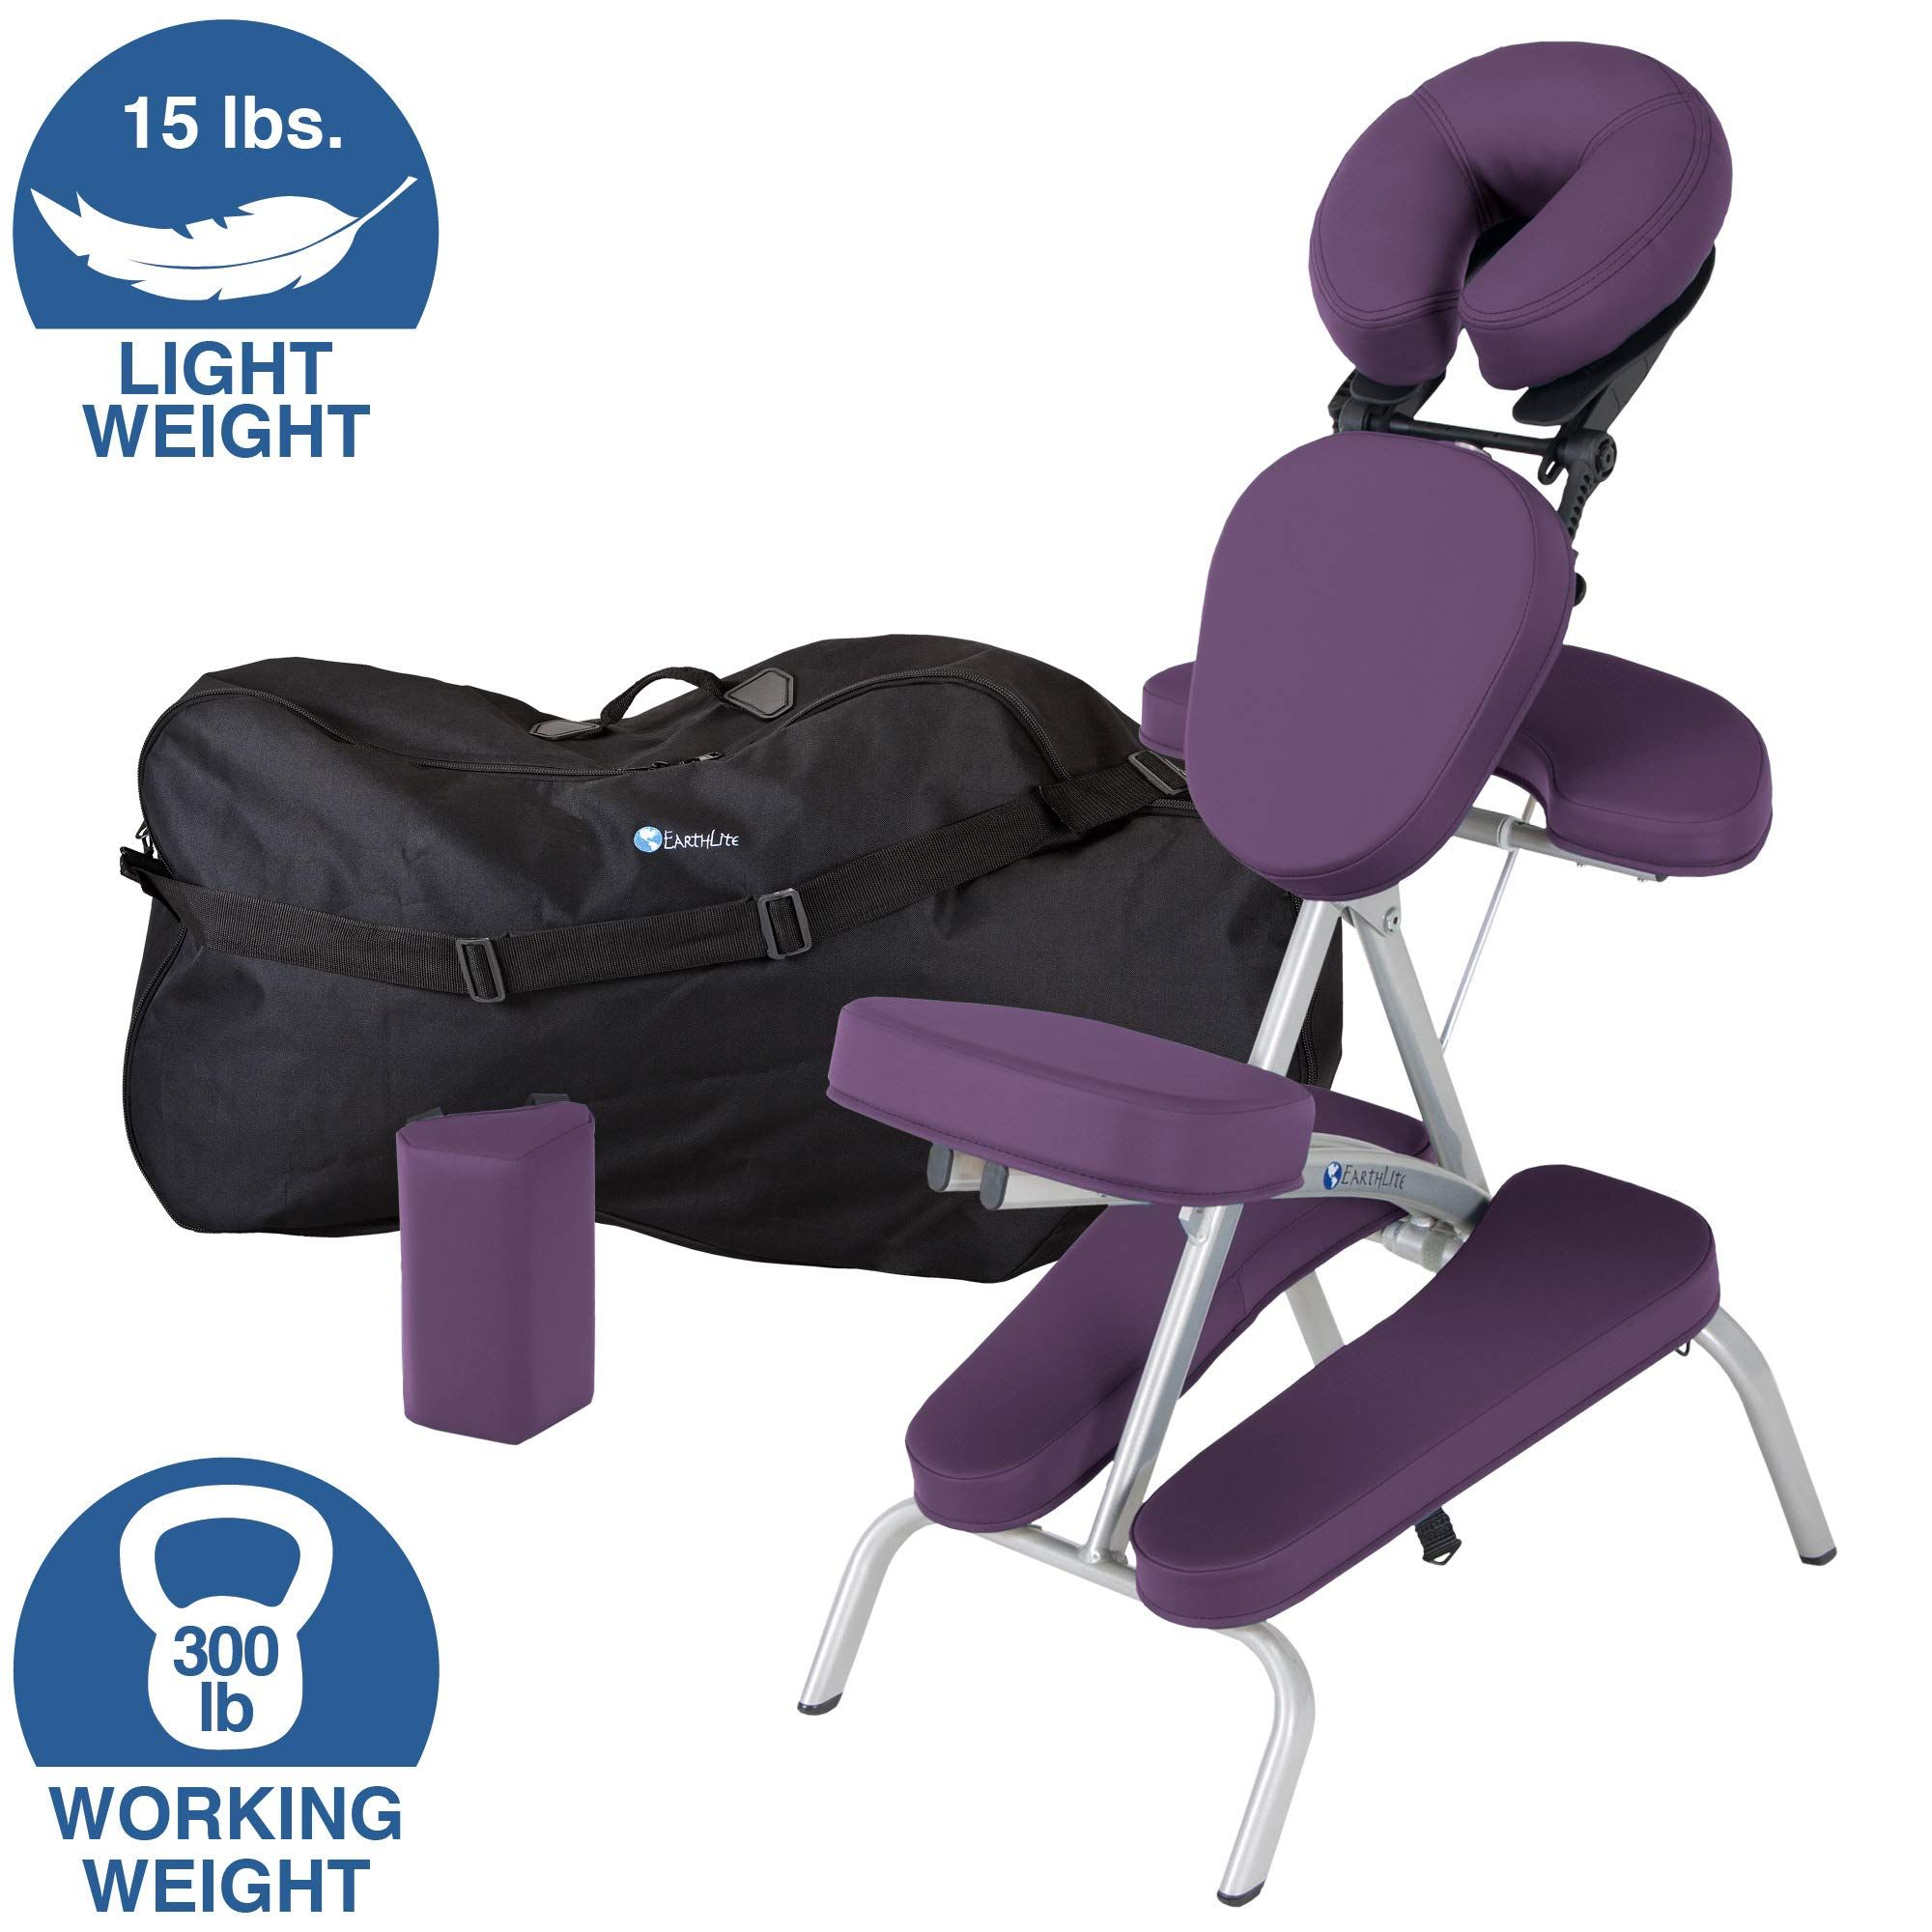 Earthlite Portable Massage Chair Package Vortex Portable Compact Strong And Lightweight Incl Carry Case Sternum Pad Am Massage Chair Massage Feet Roller